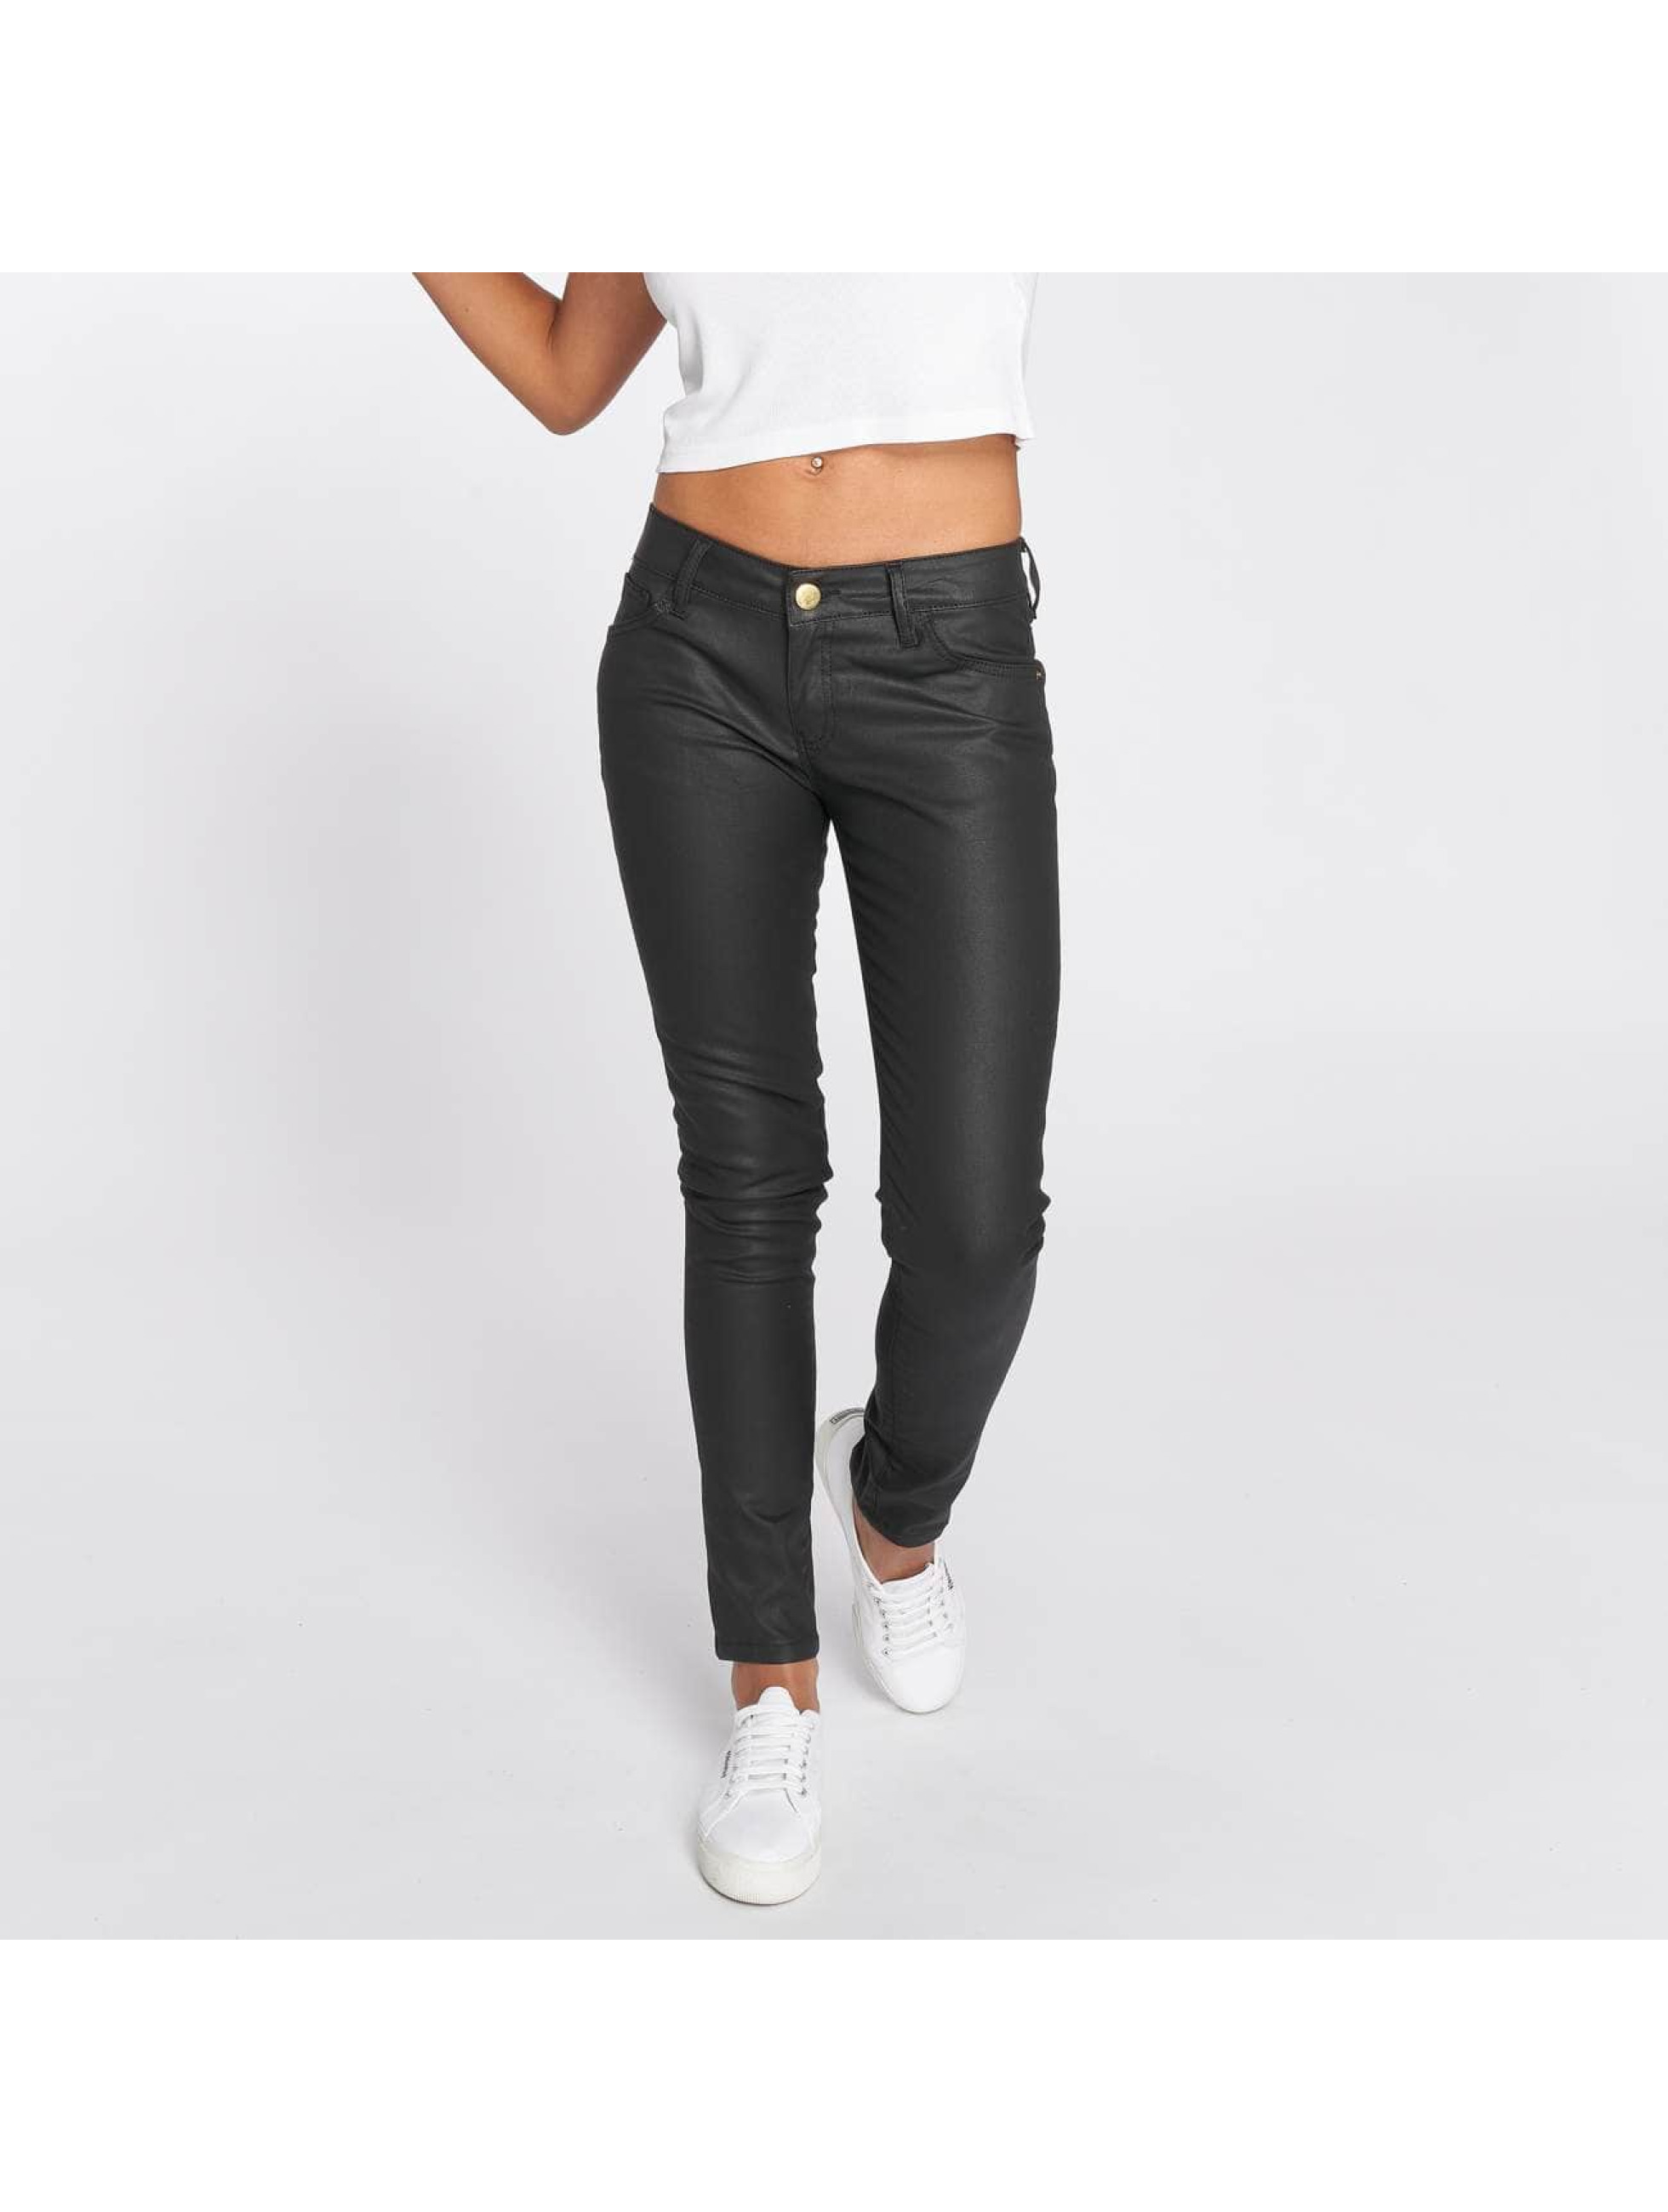 DEF Frauen Slim Fit Jeans Leatherlook in schwarz